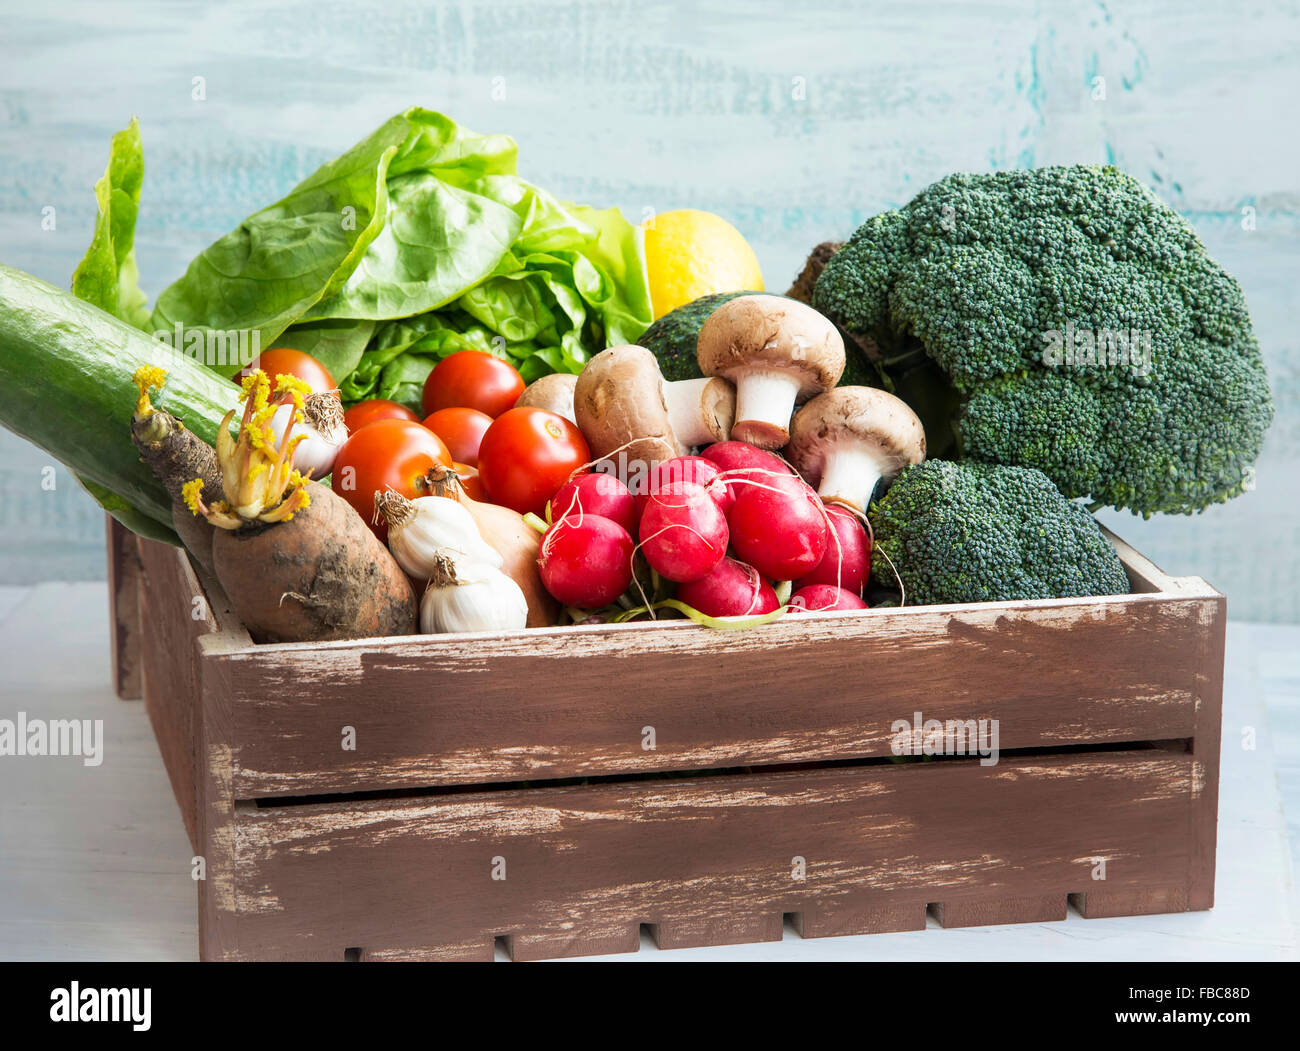 Fresh bio vegetables in wooden crate with salad,carrots,mushrooms,tomatoes,broccoli,radish,avocado,onions and garlic Stock Photo